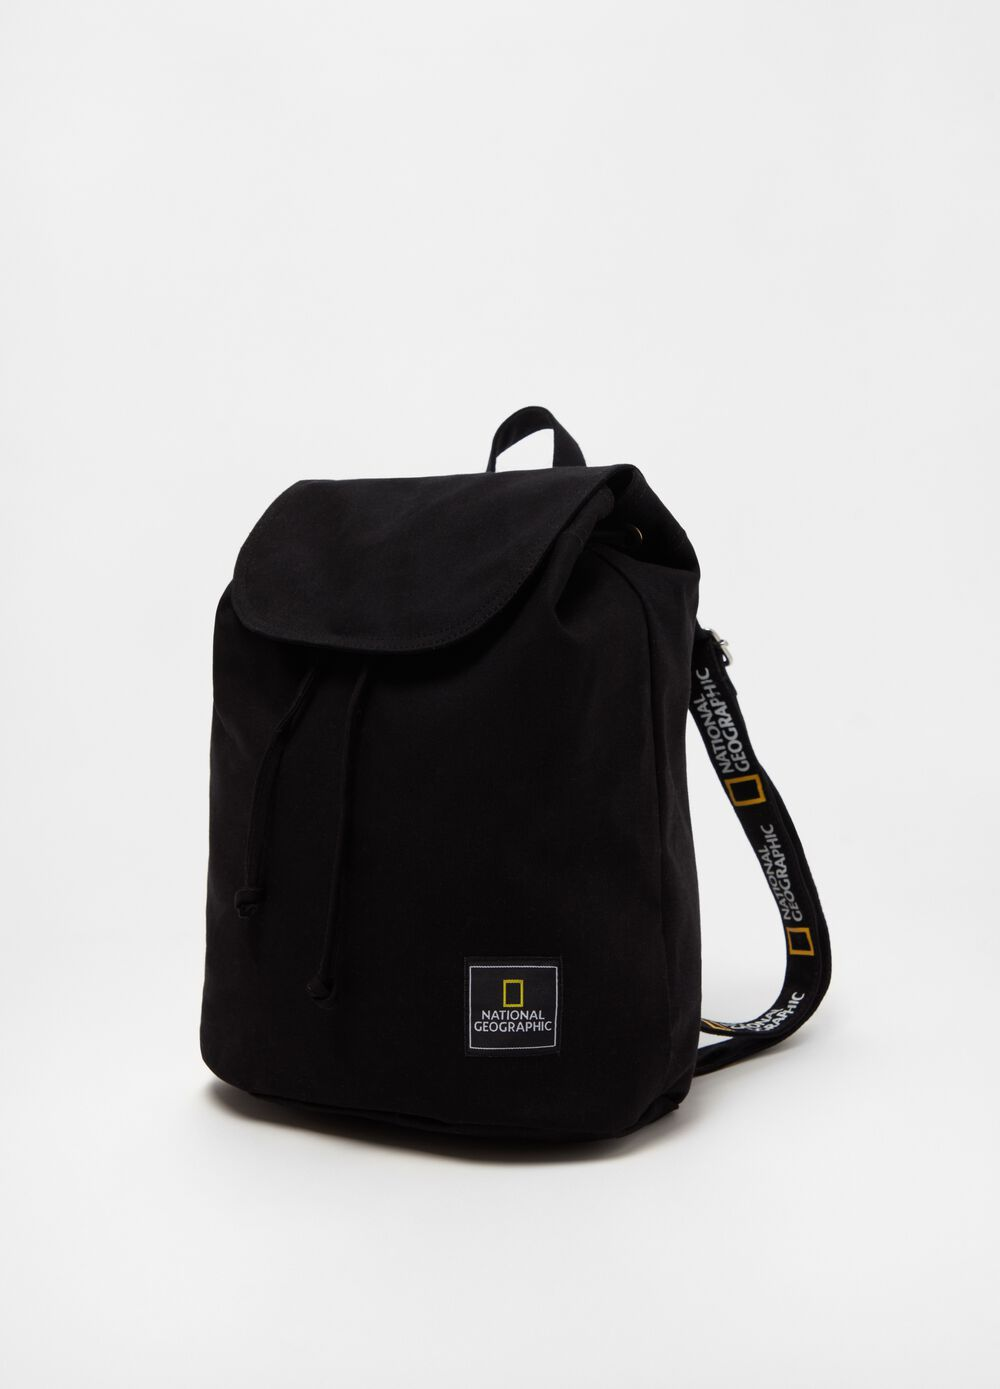 Cotton National Geographic backpack